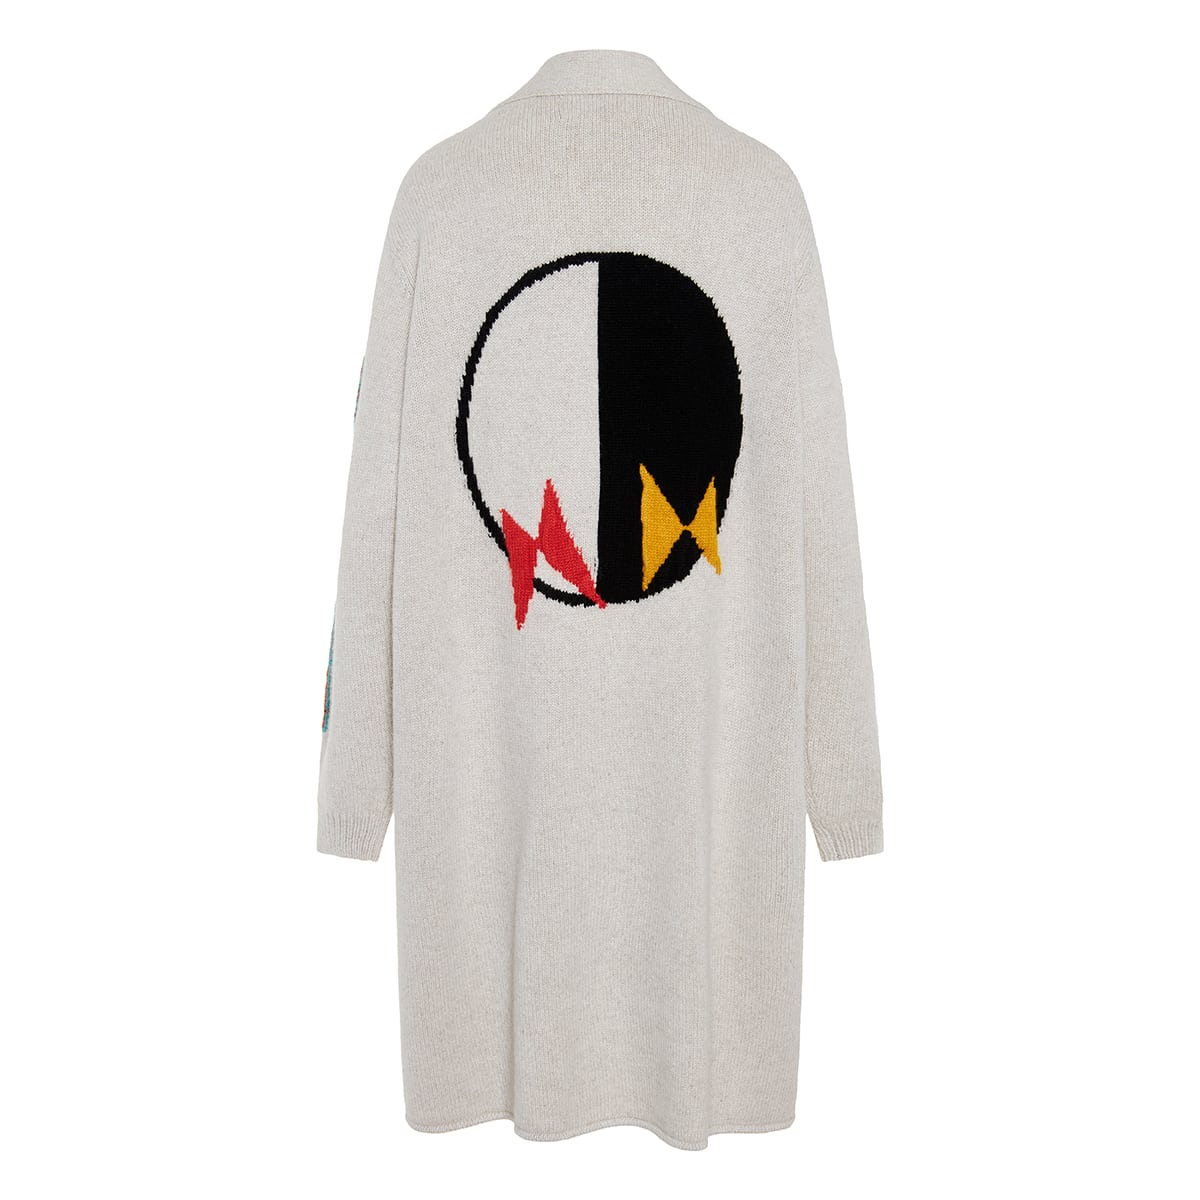 Light and Darkness oversized cardigan